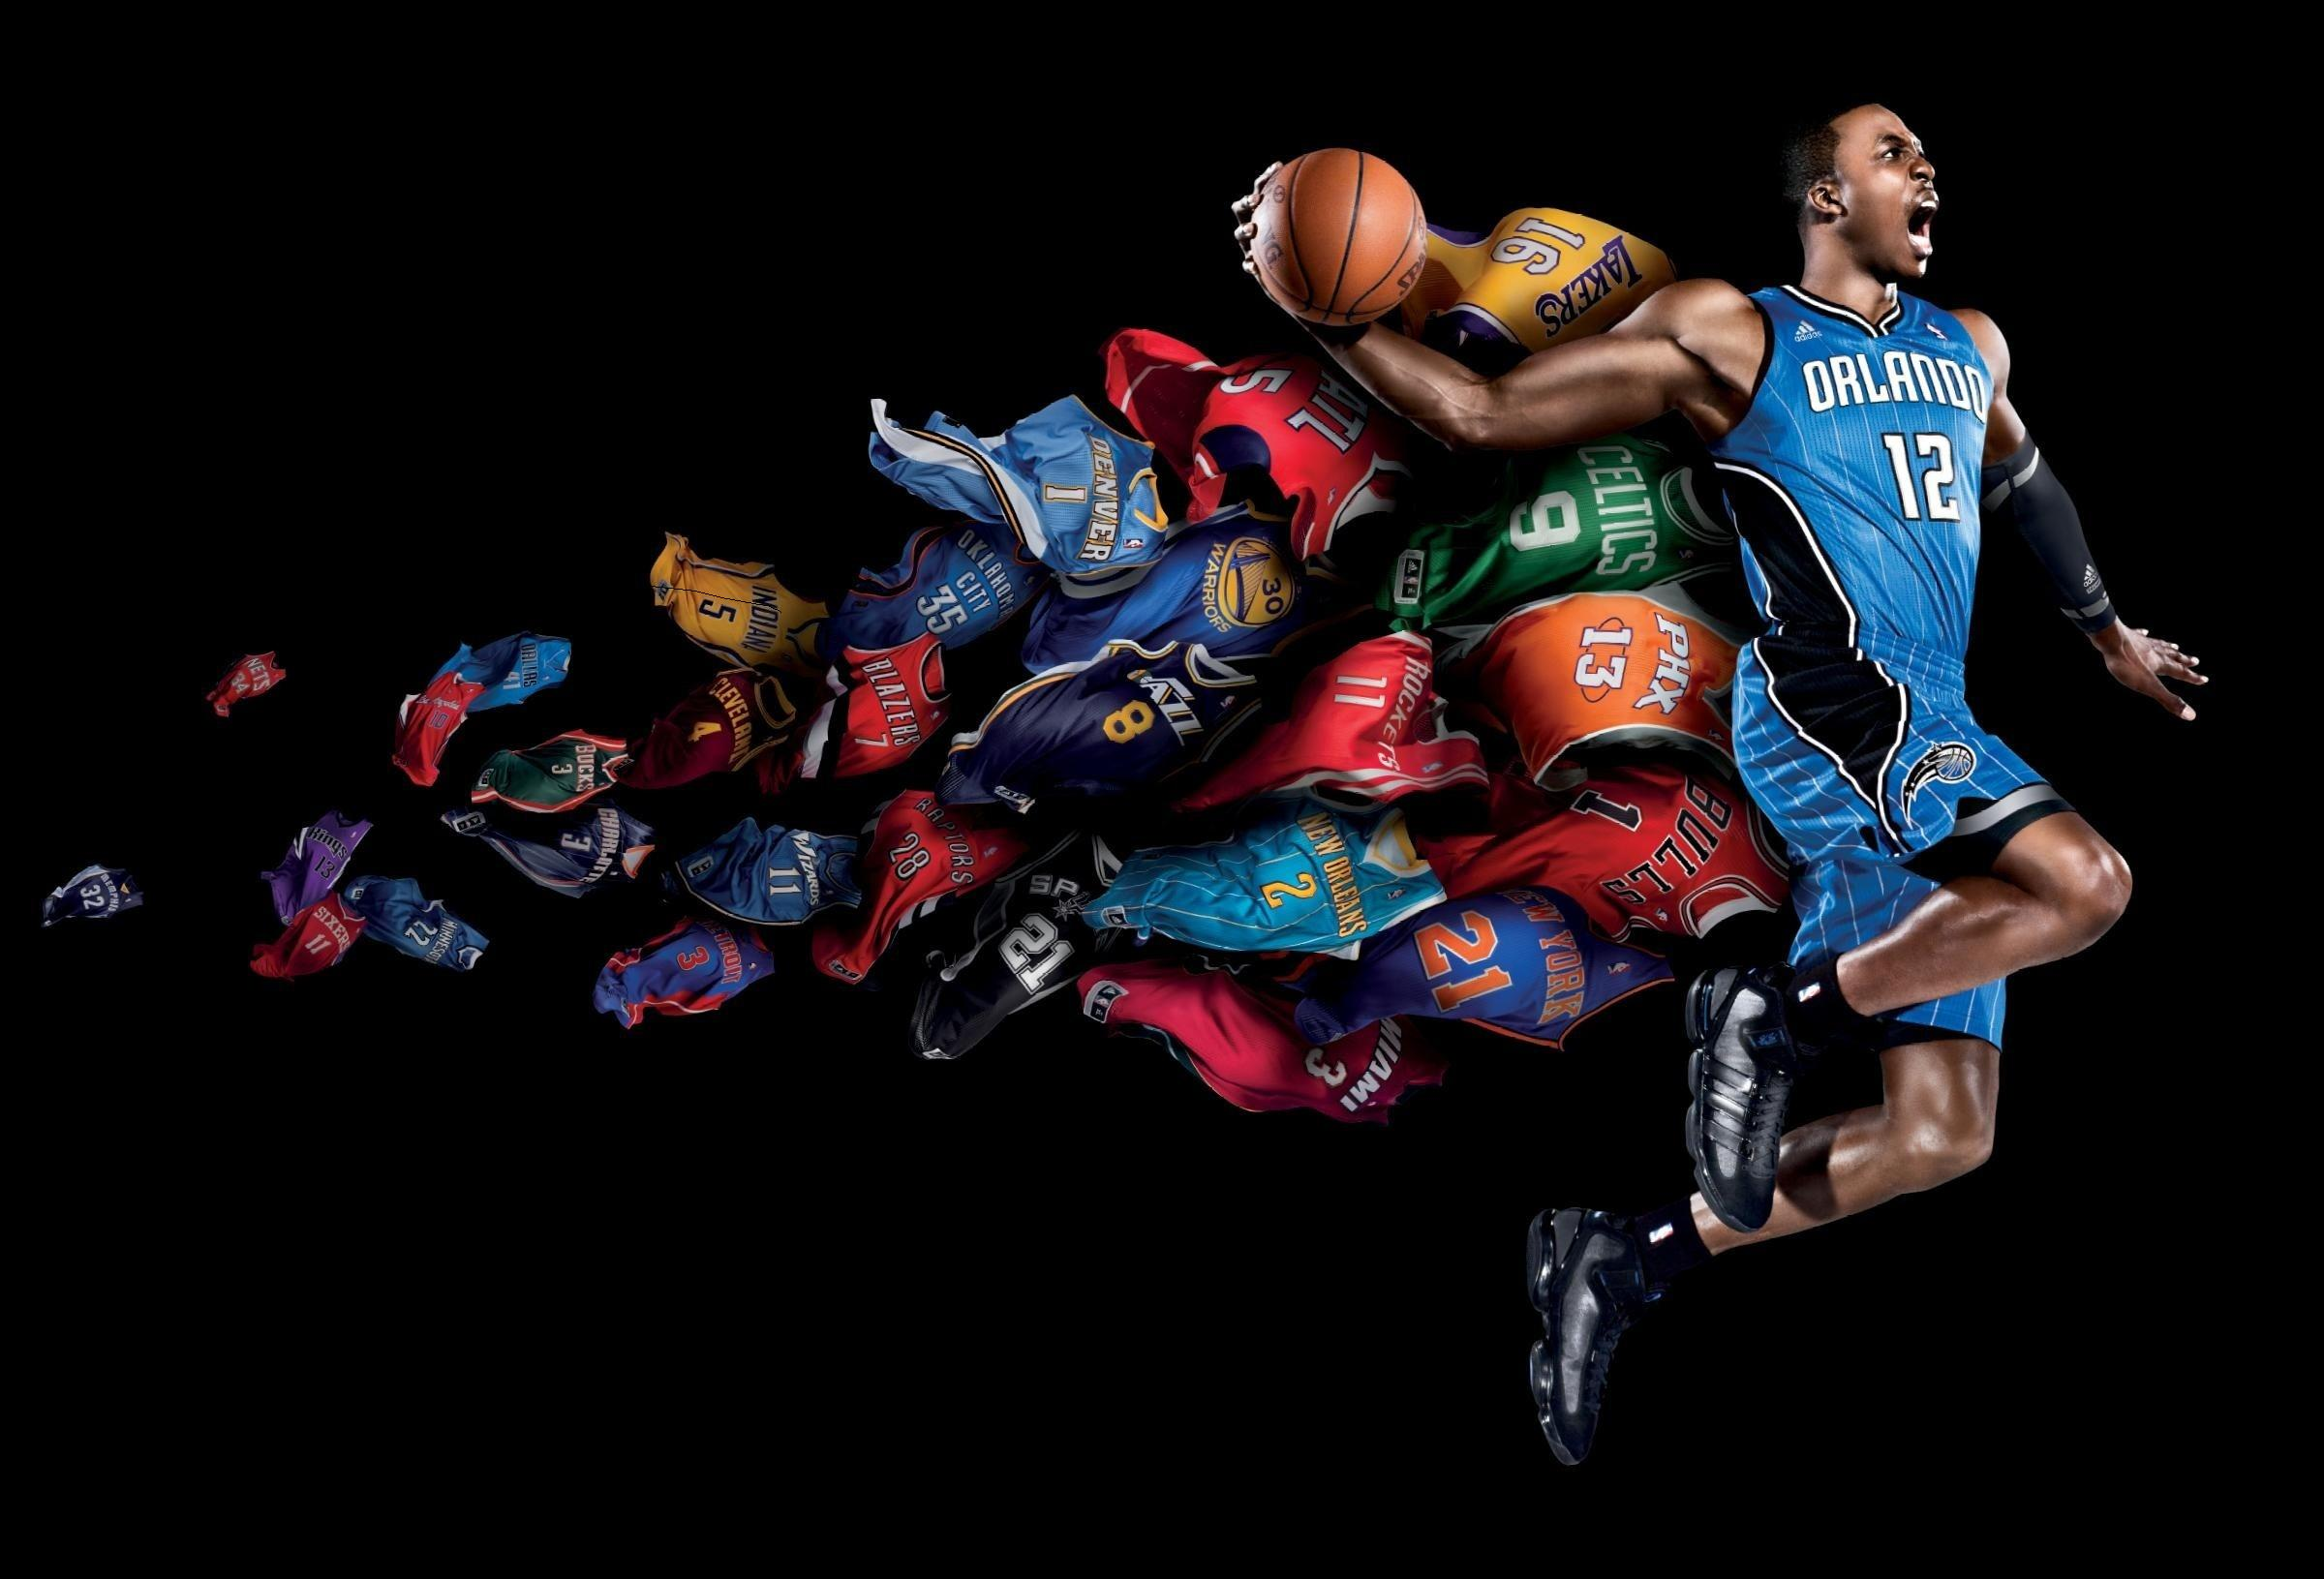 basketball wallpapers basketball wallpapers 2015 basketball wallpapers 2400x1631